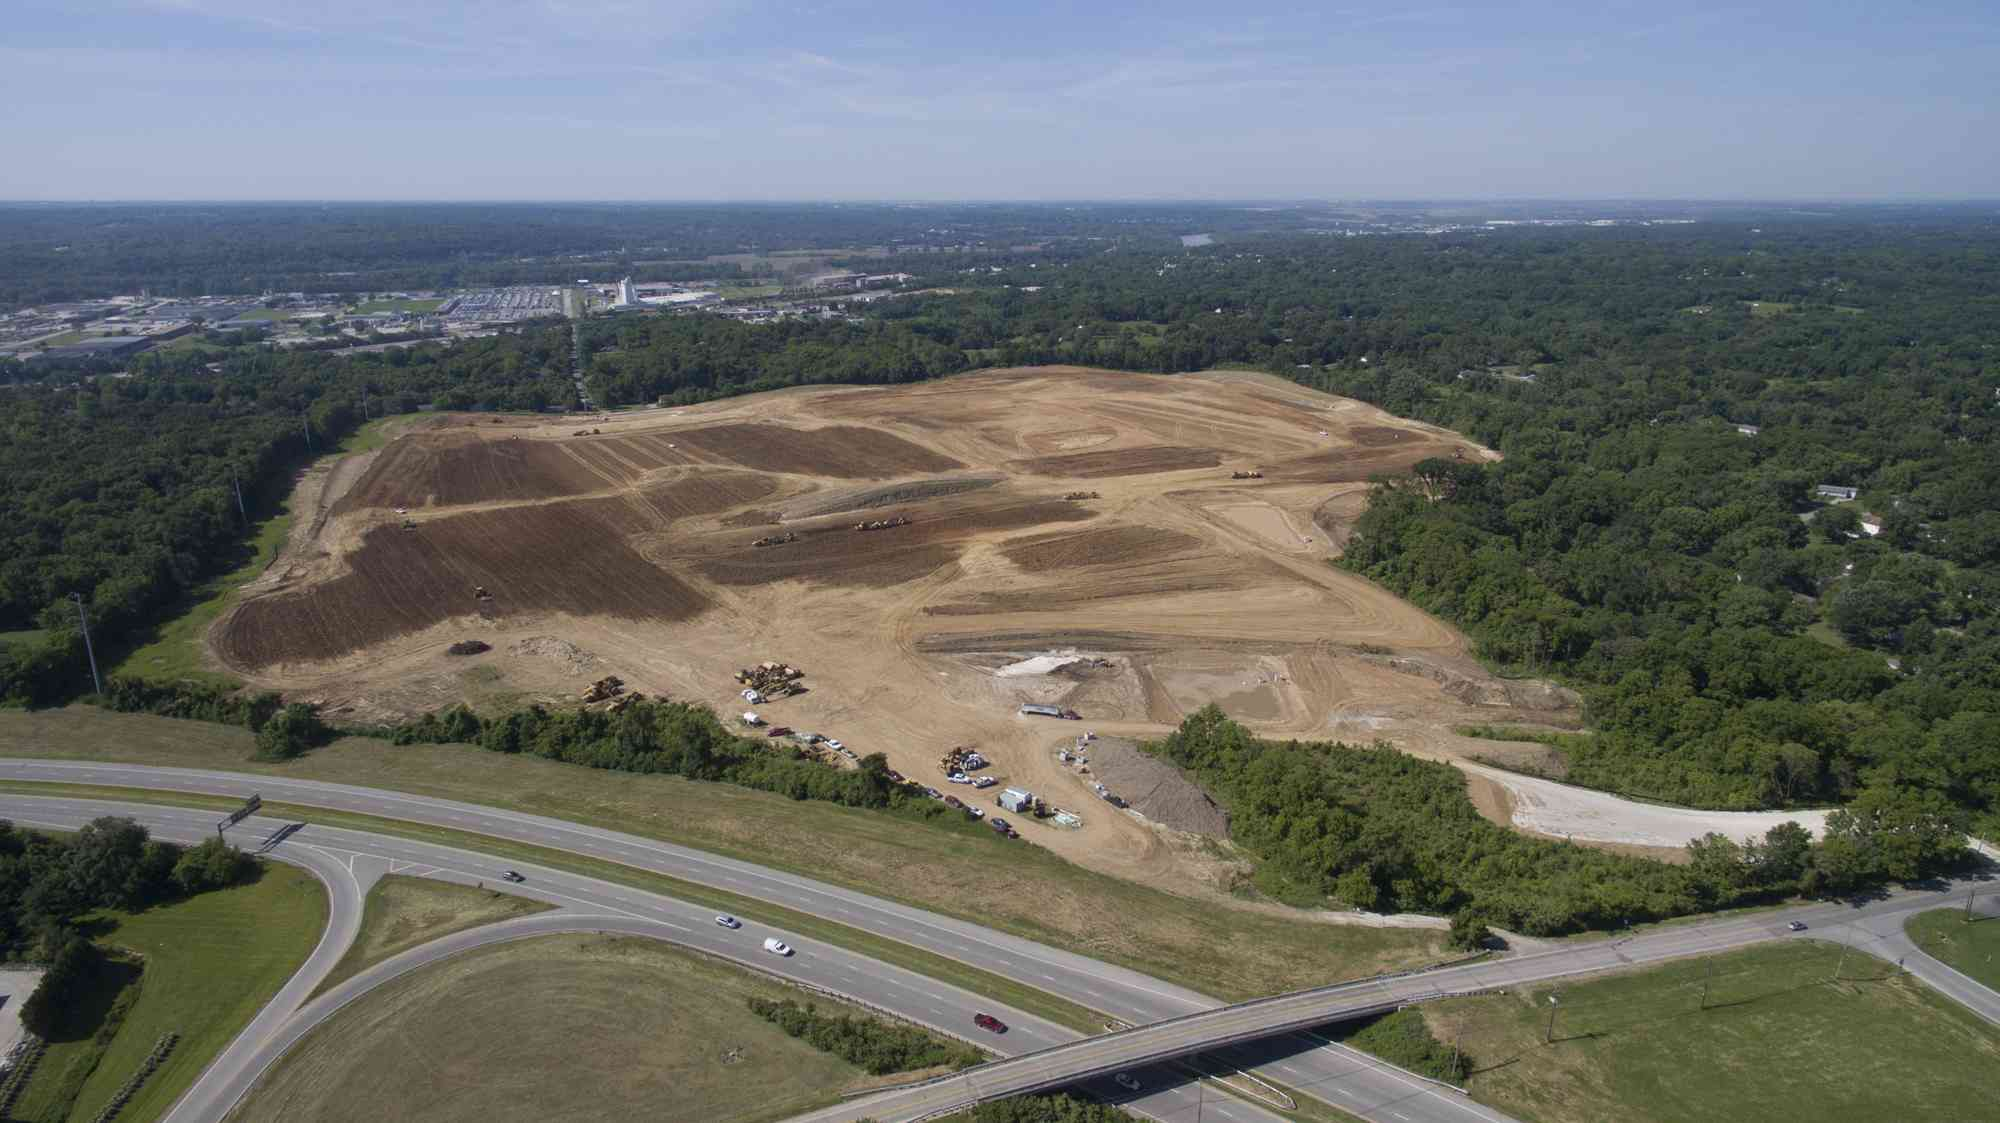 The site of Amazon's third fulfillment center in the K.C. area